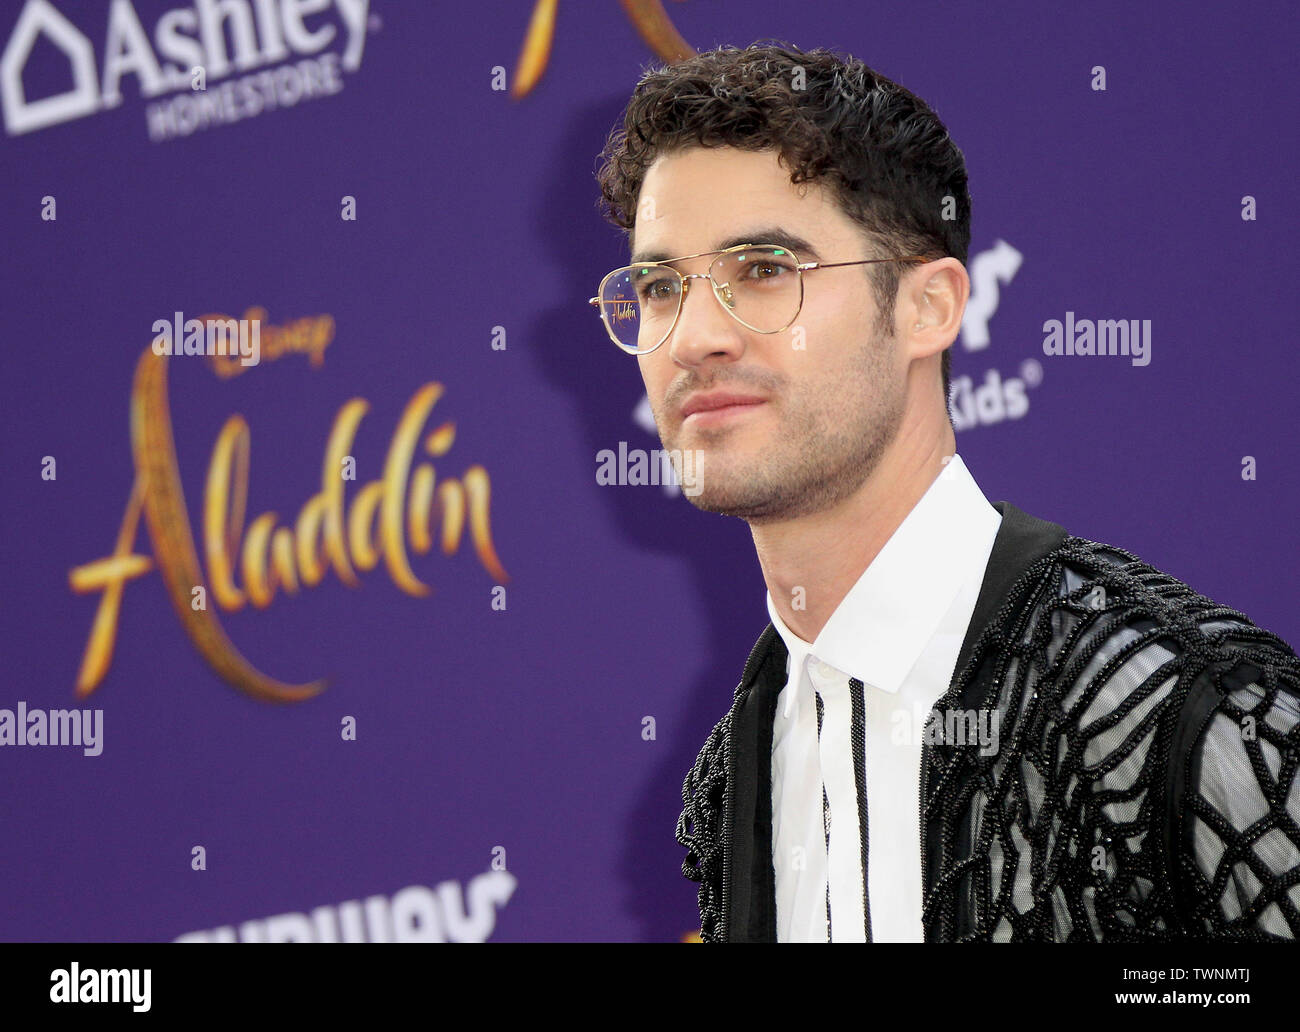 """Disney's Live- Action """"Aladdin"""" Premiere held at the El Capitan Theatre in Hollywood, California. Featuring: Darren Criss Where: Los Angeles, California, United States When: 21 May 2019 Credit: Adriana M. Barraza/WENN.com - Stock Image"""